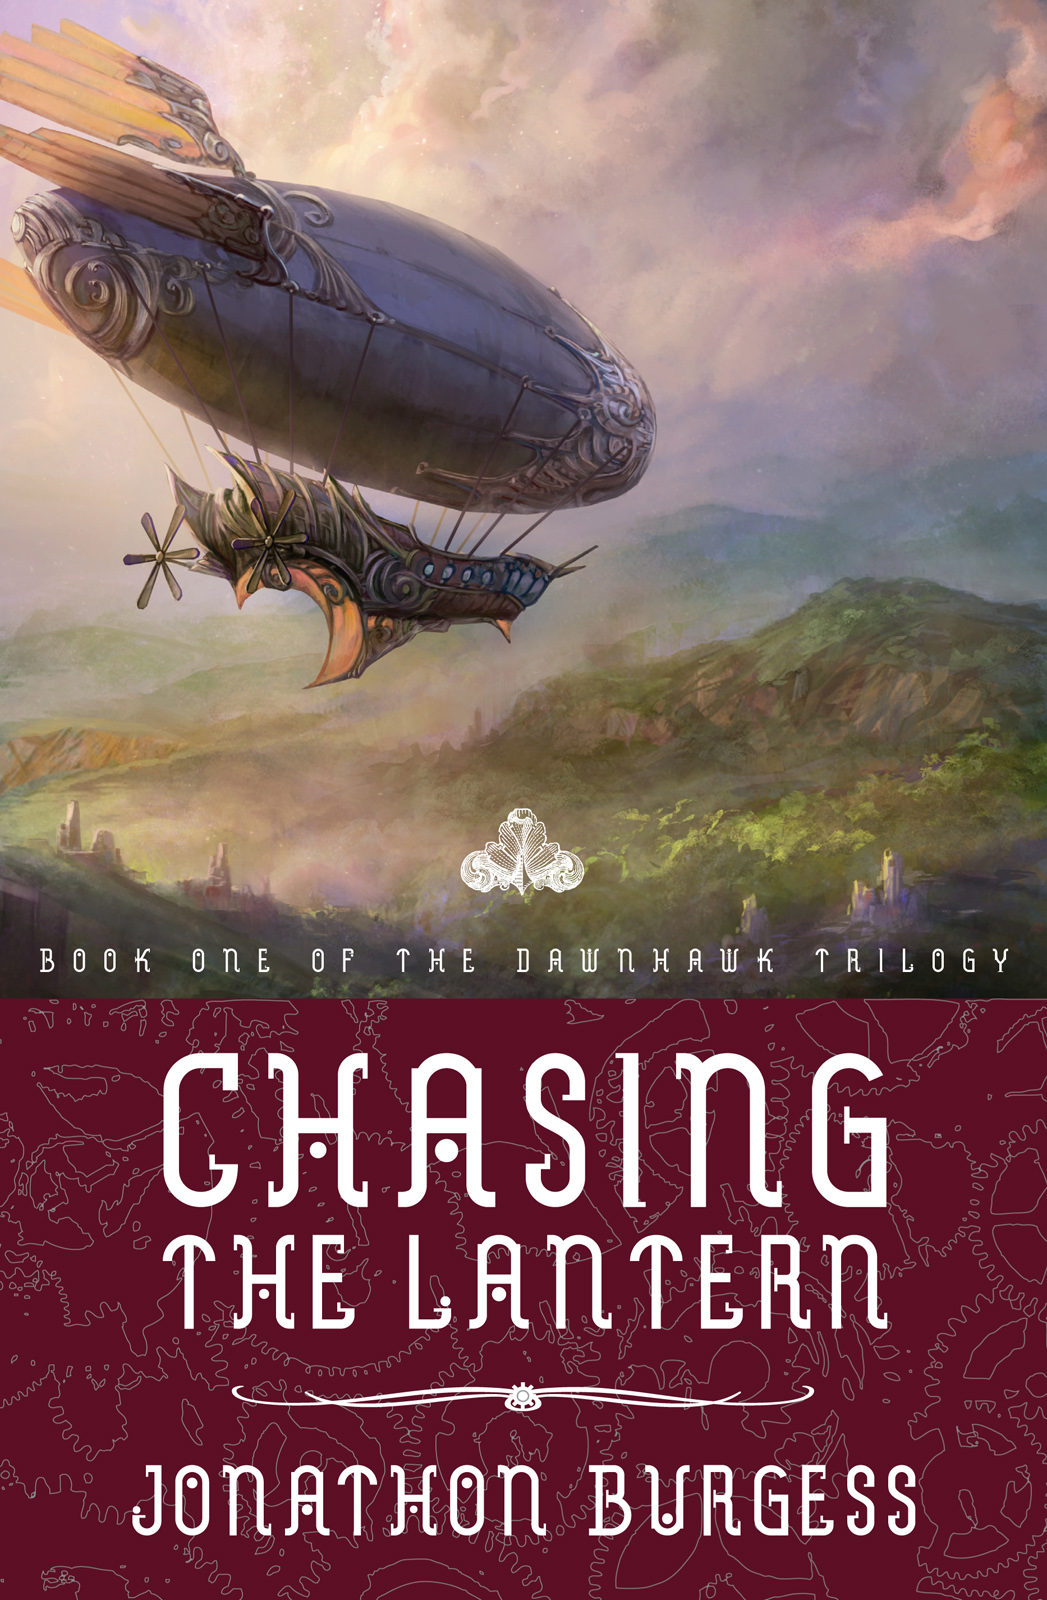 Jonathon Burgess is the author of Chasing the Lantern, a steampunk fantasy adventure. Inspired by modern bestsellers as well as classics by Gilbert & Sullivan, this first book in the Dawnhawk Trilogy contains mysterious jungles, inhuman monsters, and a pair of sky pirate captains who are bitter enemies...and also just happen to be married.